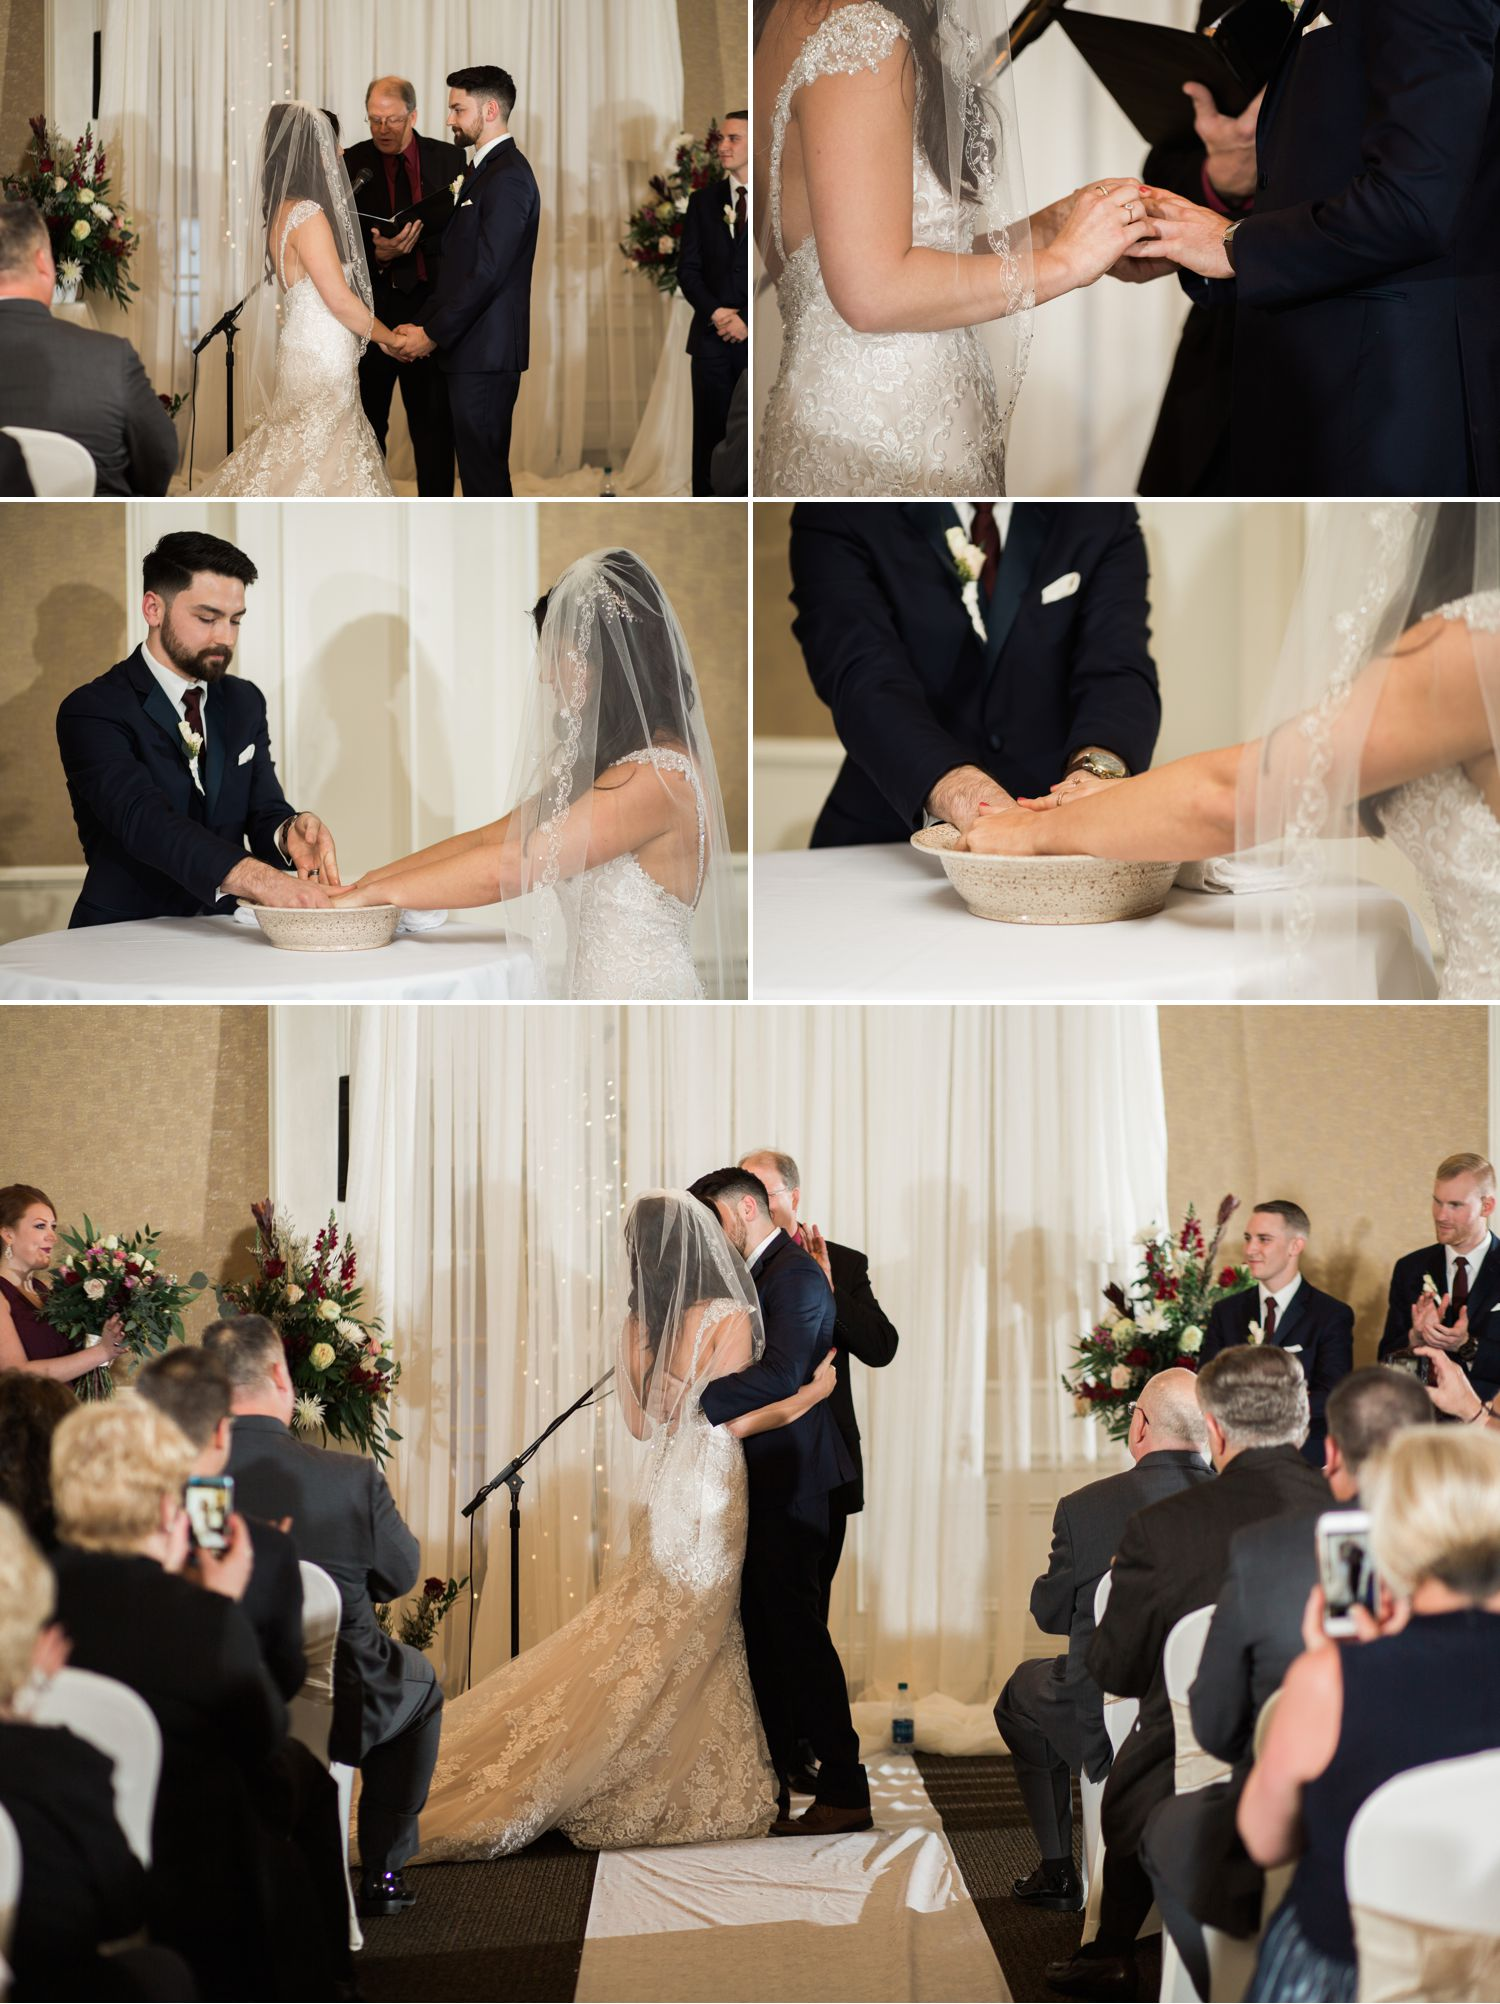 instead of opting for a sand ceremony or unity candle, mike and erika chose to wash each others hands. A meaningful representation that shows love, compassion, and vulnerability towards one another.